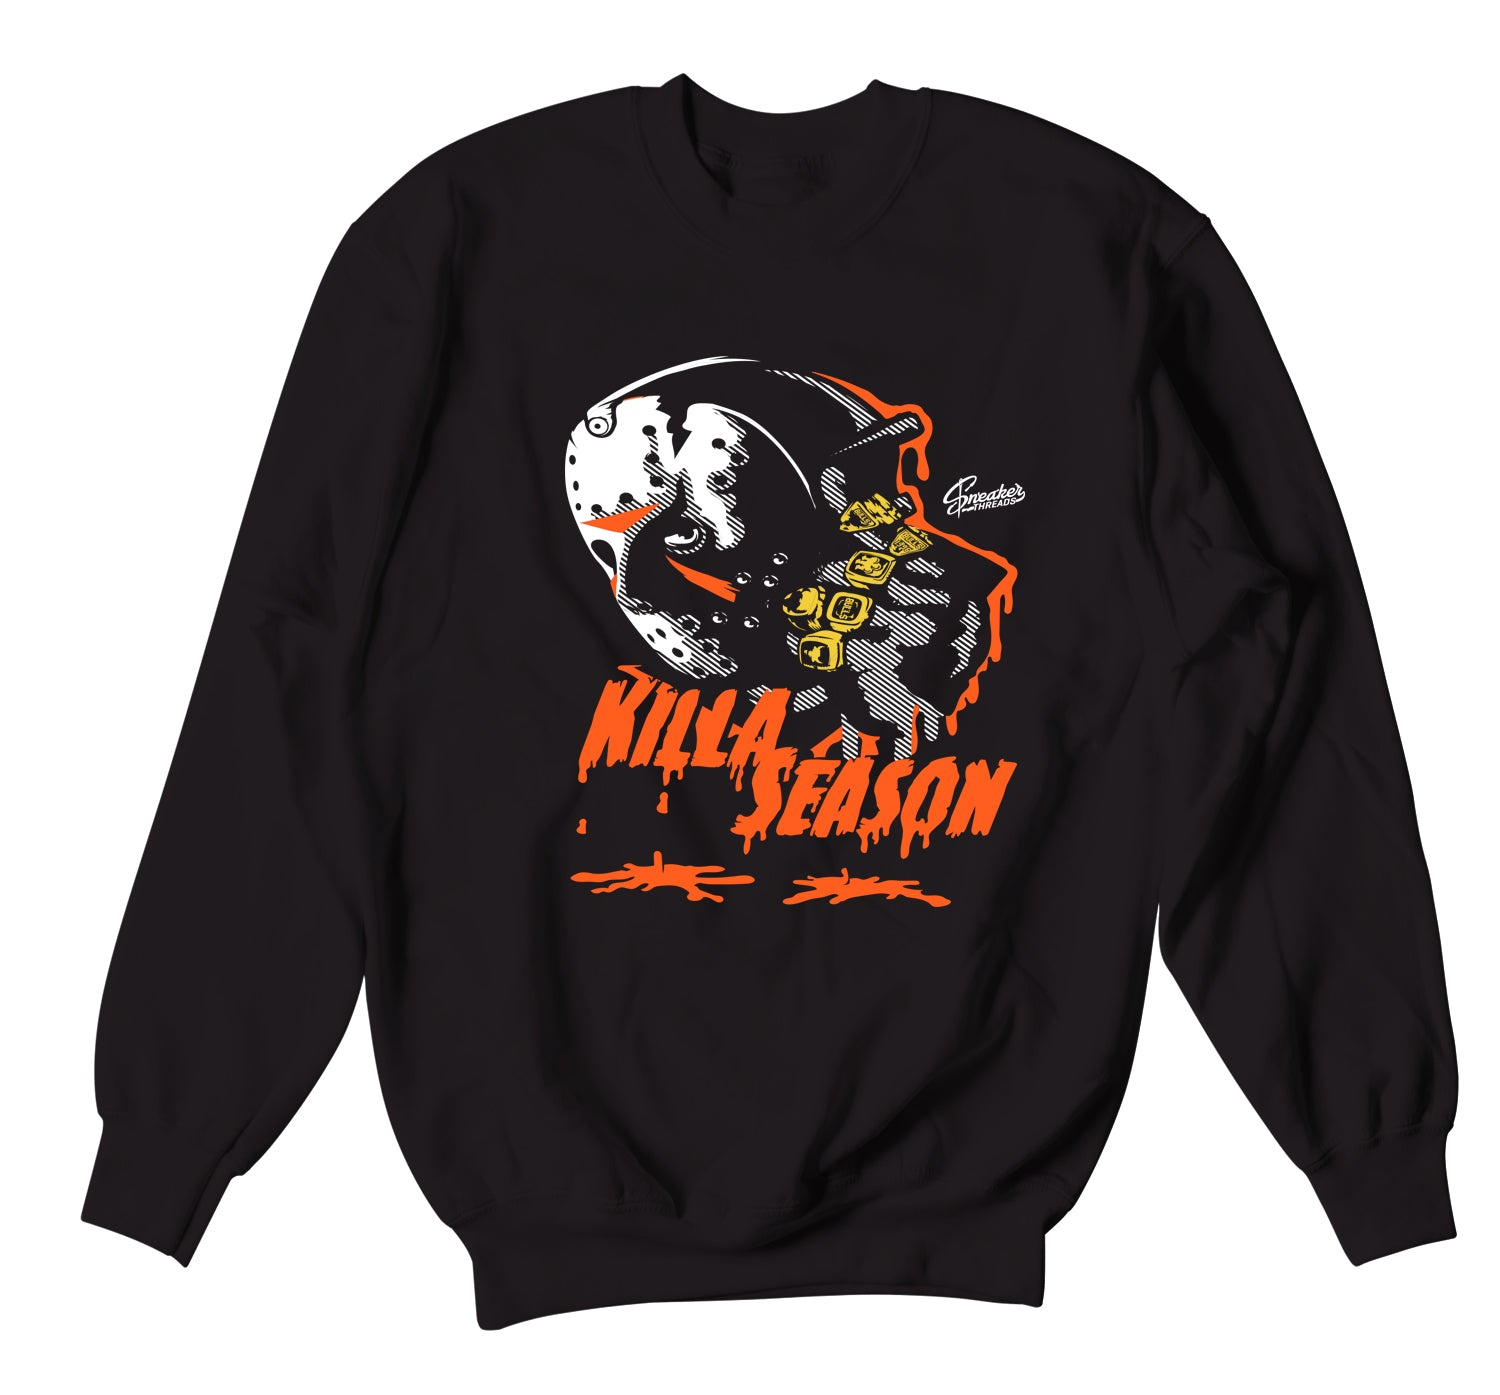 Sweater Season collection for Foams Shattered Backboards